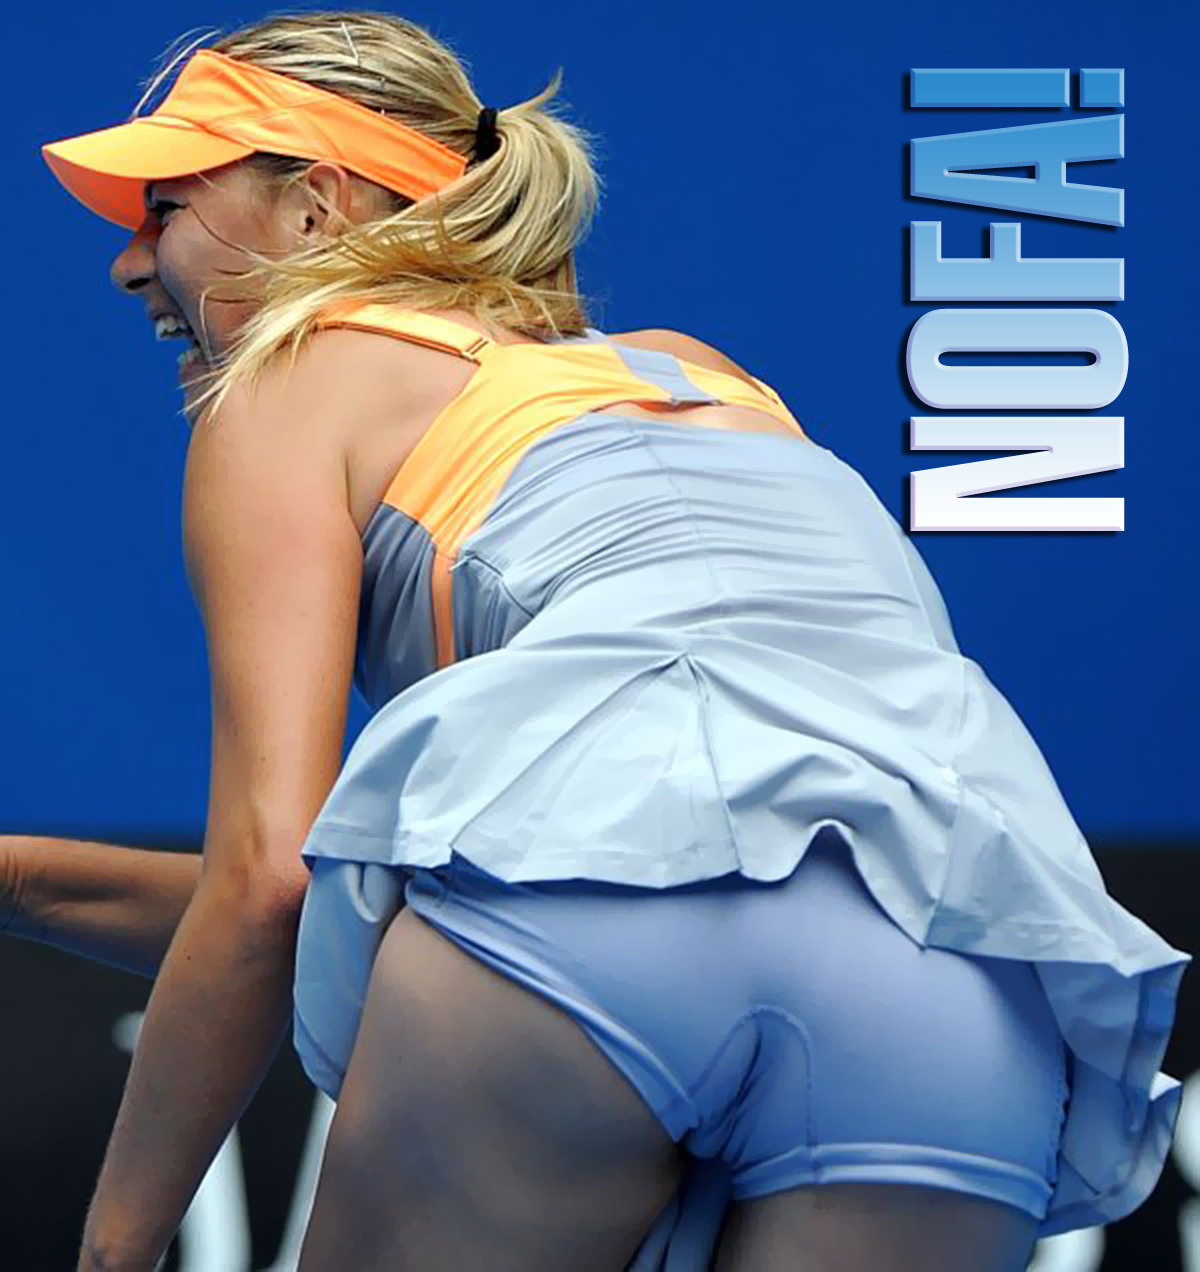 Fuck, she's tennis players porn lovely cock